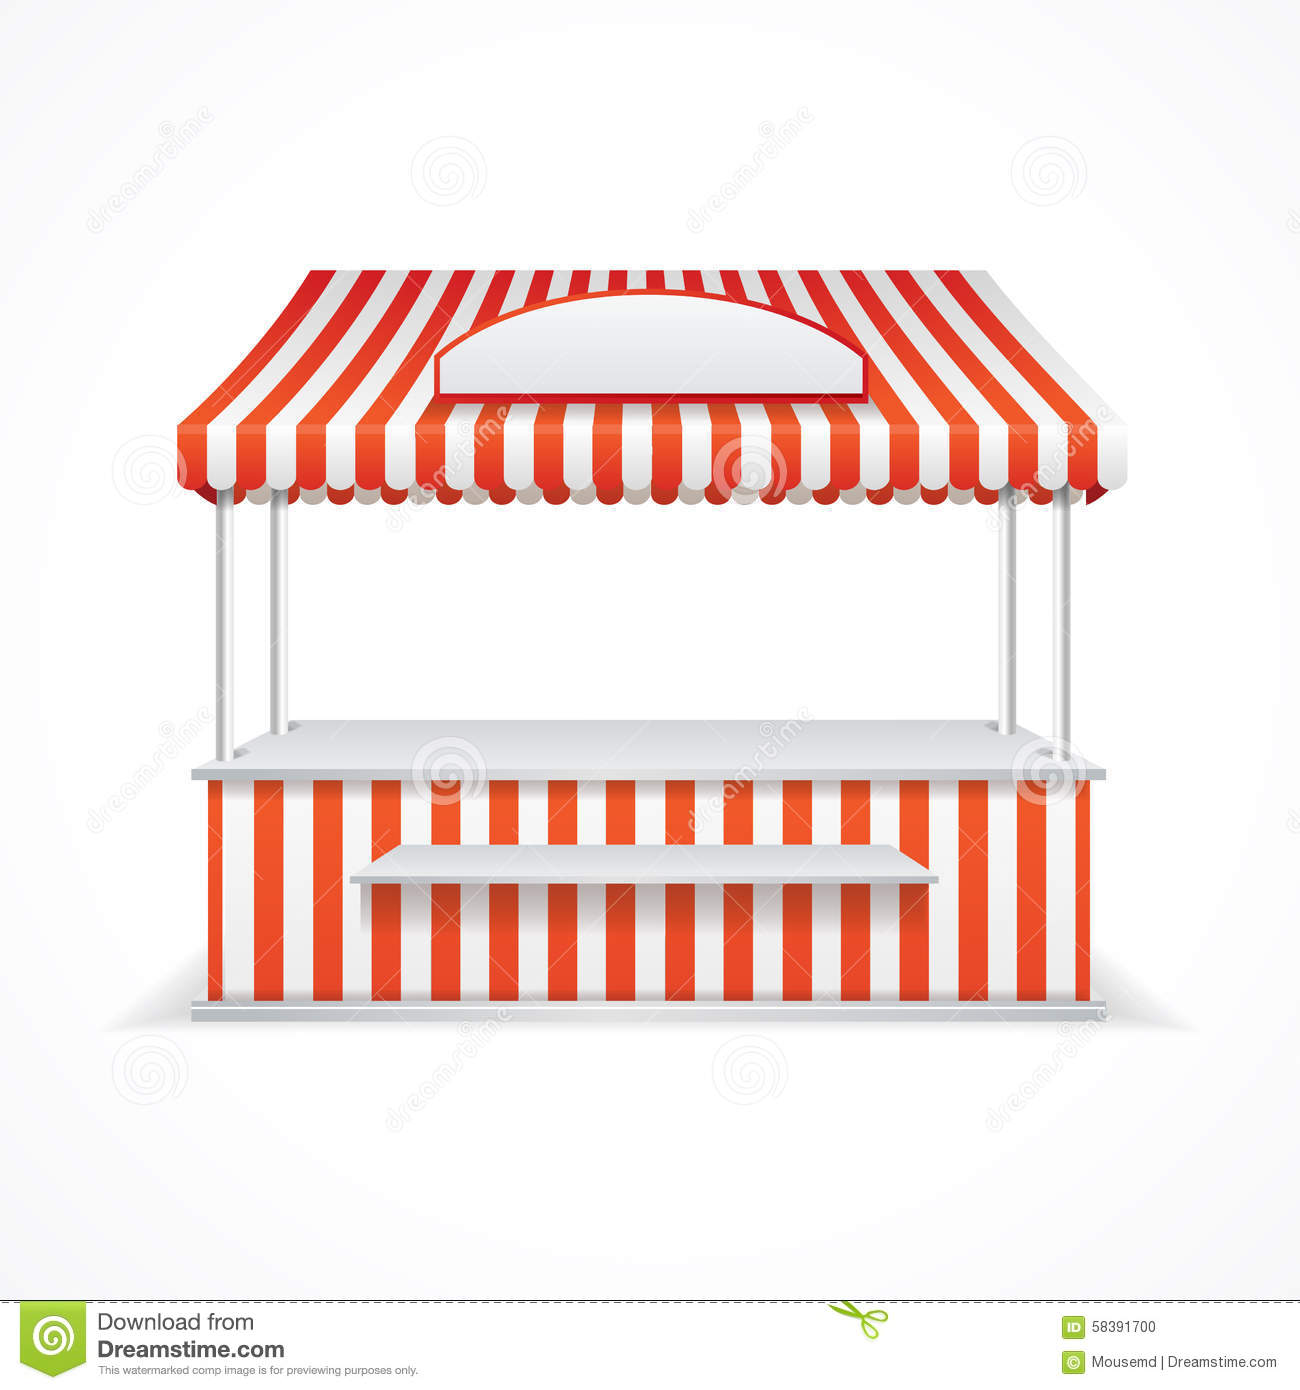 Exhibition Stall Vector Free Download : Market stall clipart clipground